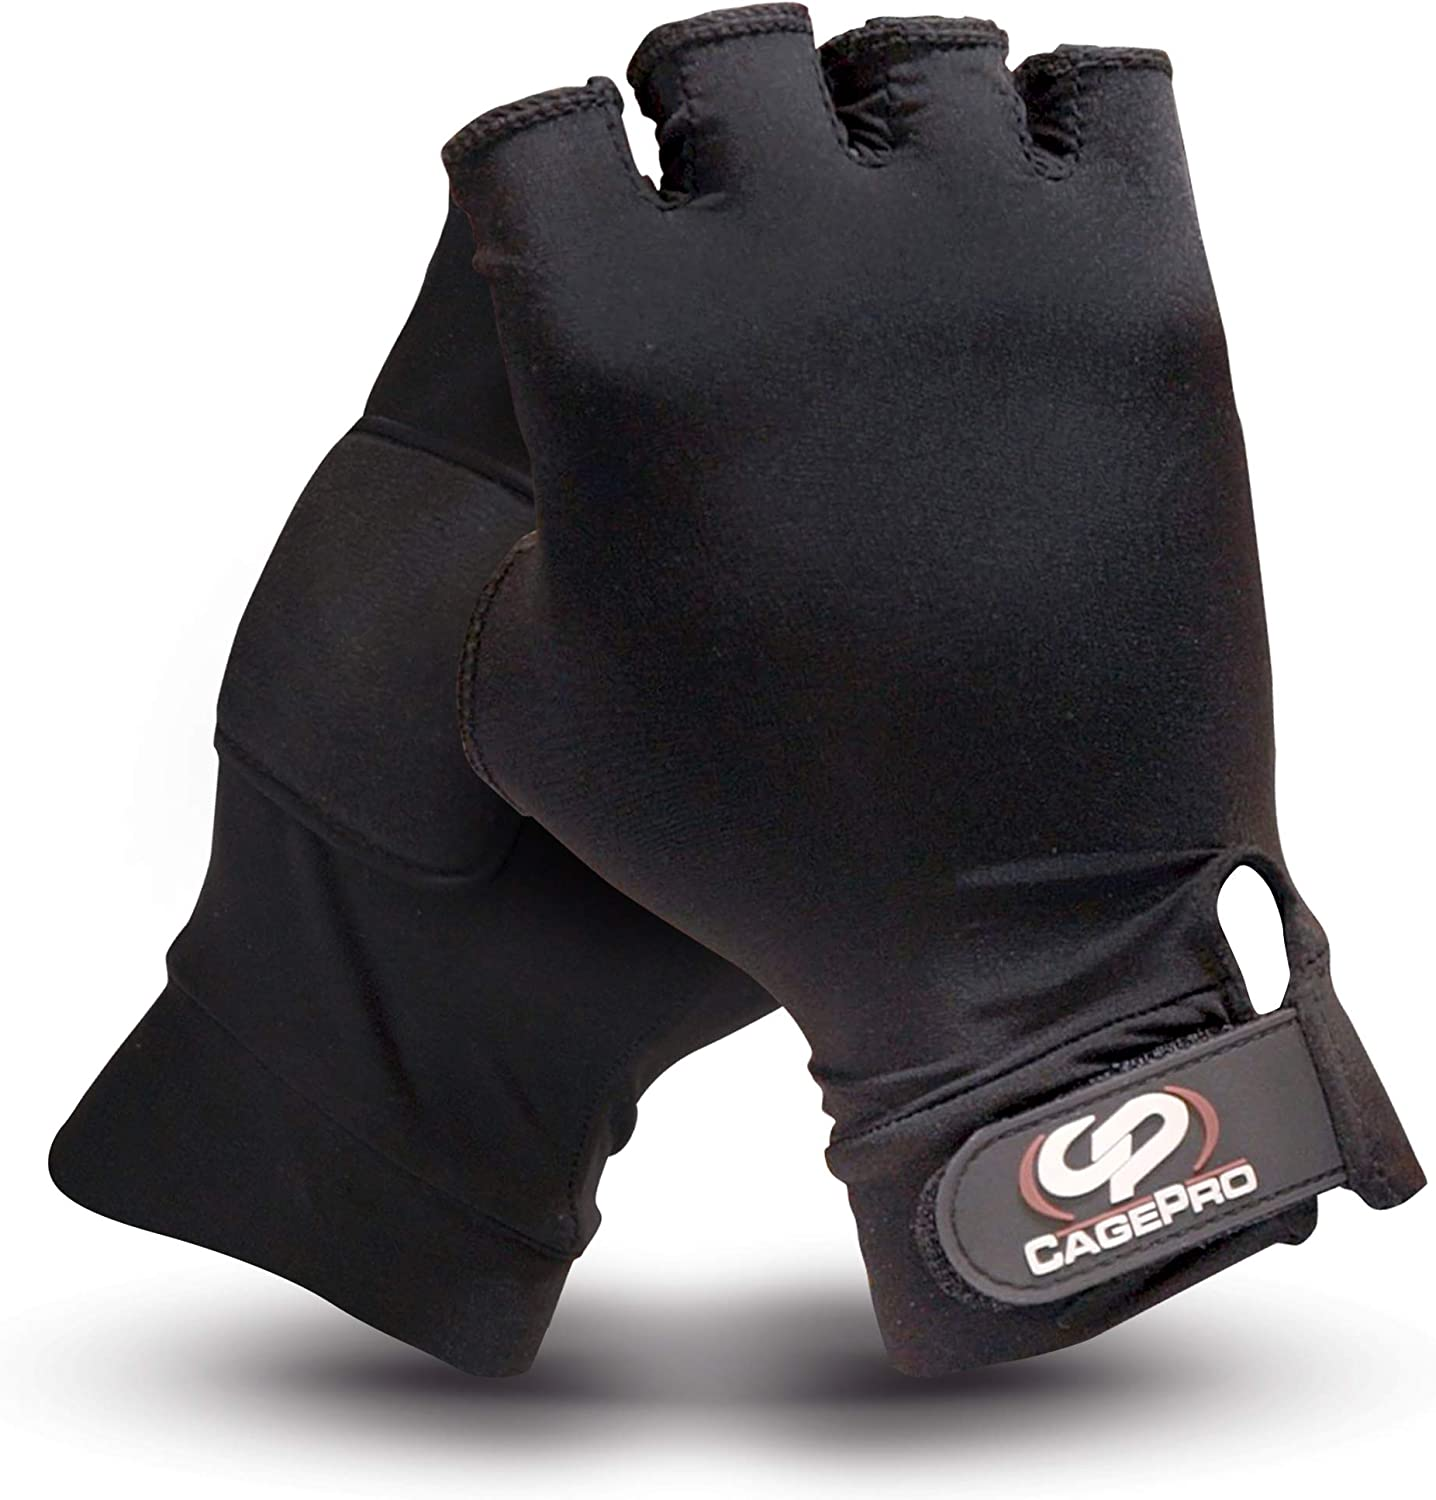 CagePro Batting Sleeves Free Our shop OFFers the best service shipping New Gloves - Kids